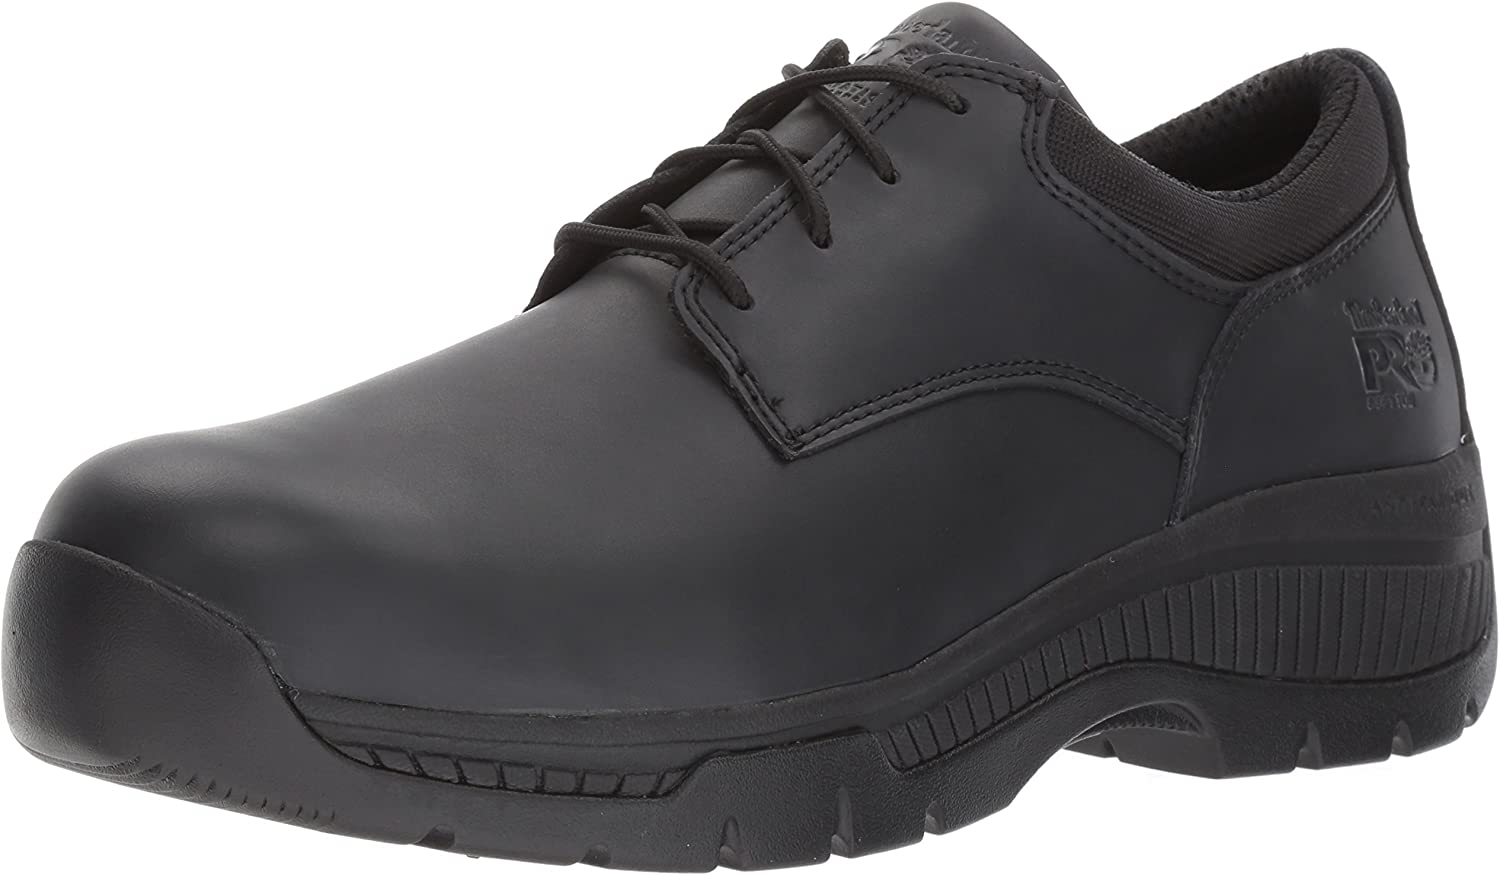 Timberland PRO Men's Valor Duty Soft Toe Oxford Military & Tactical Boot, Black Smooth Leather, 10